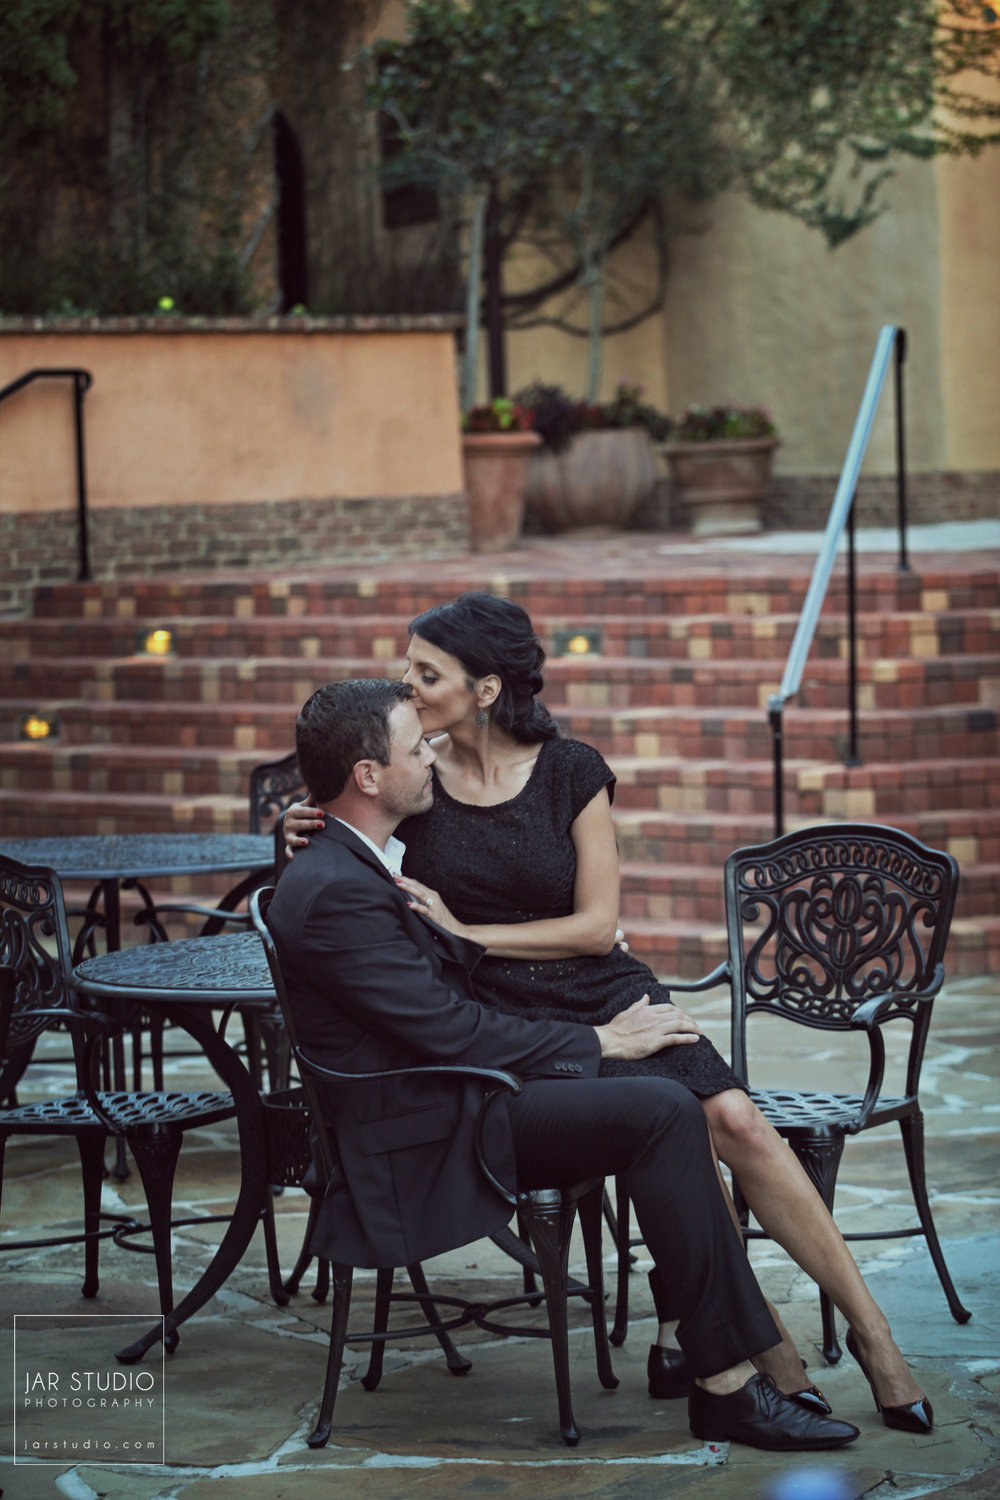 08-stunning-engagement-bella-collina-jarstudio.jpg